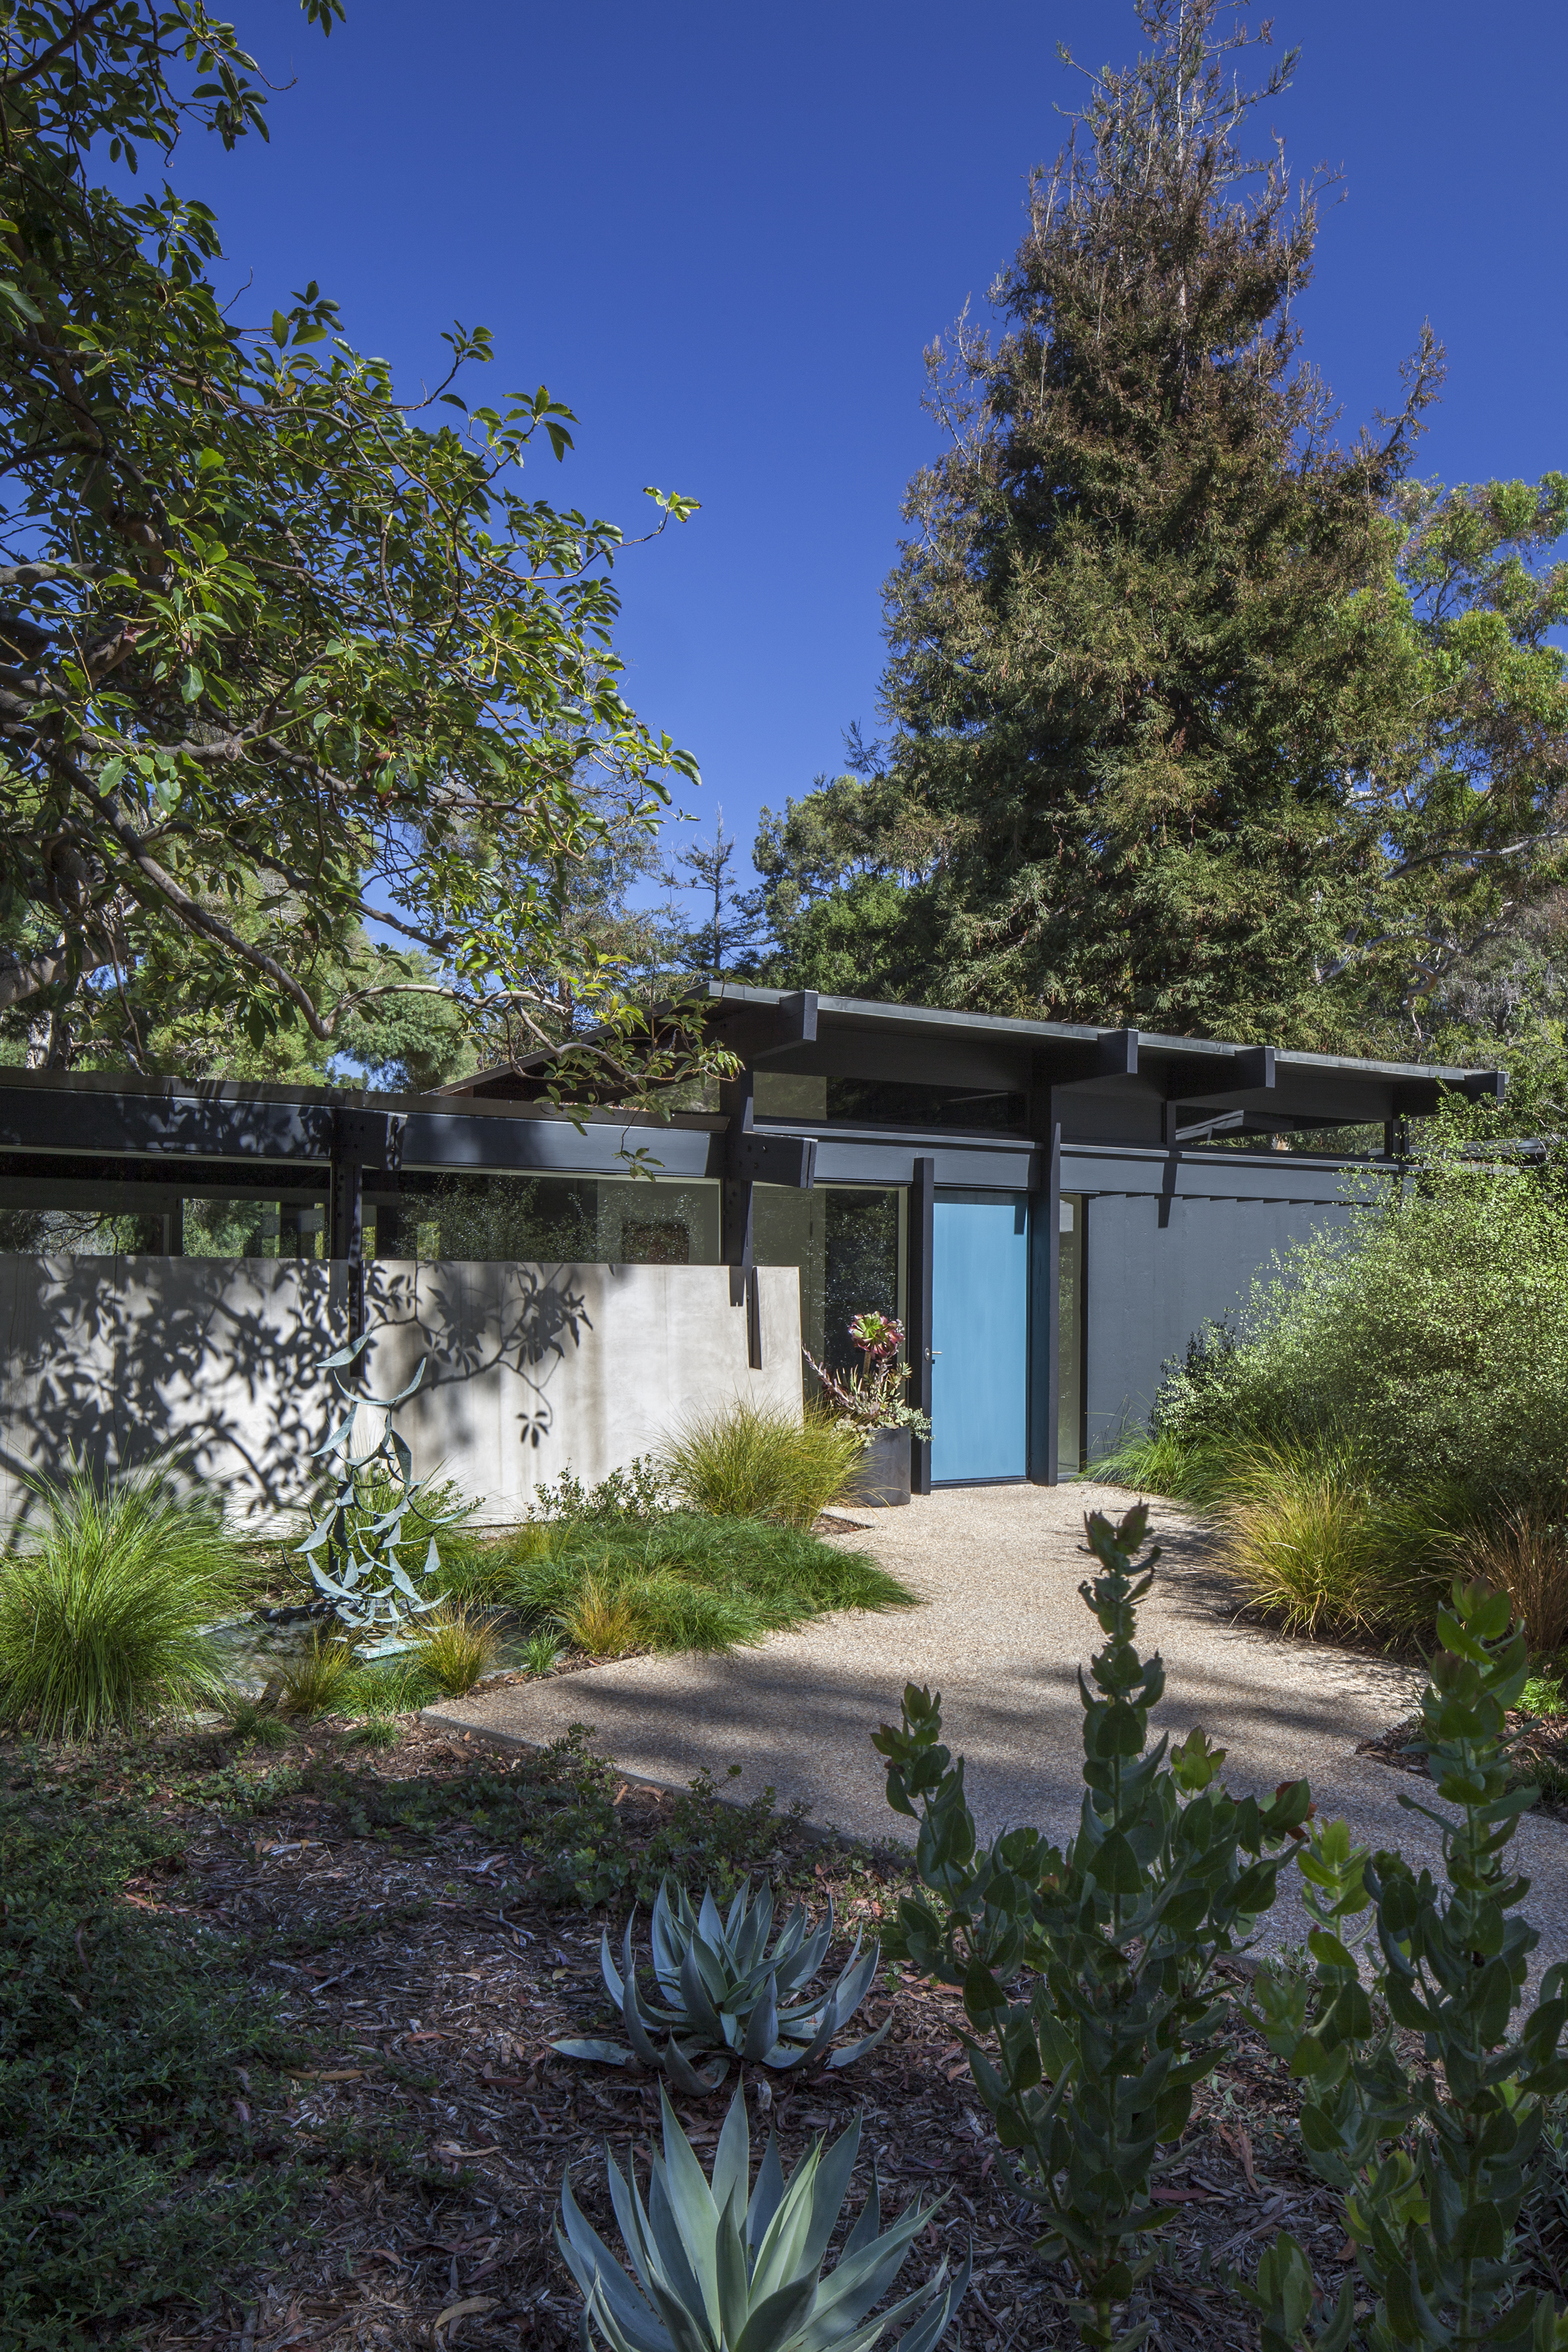 Modern home entryway with blue door - Rustic Canyon - Los Angeles garden design by Campion Walker Landscapes.jpg